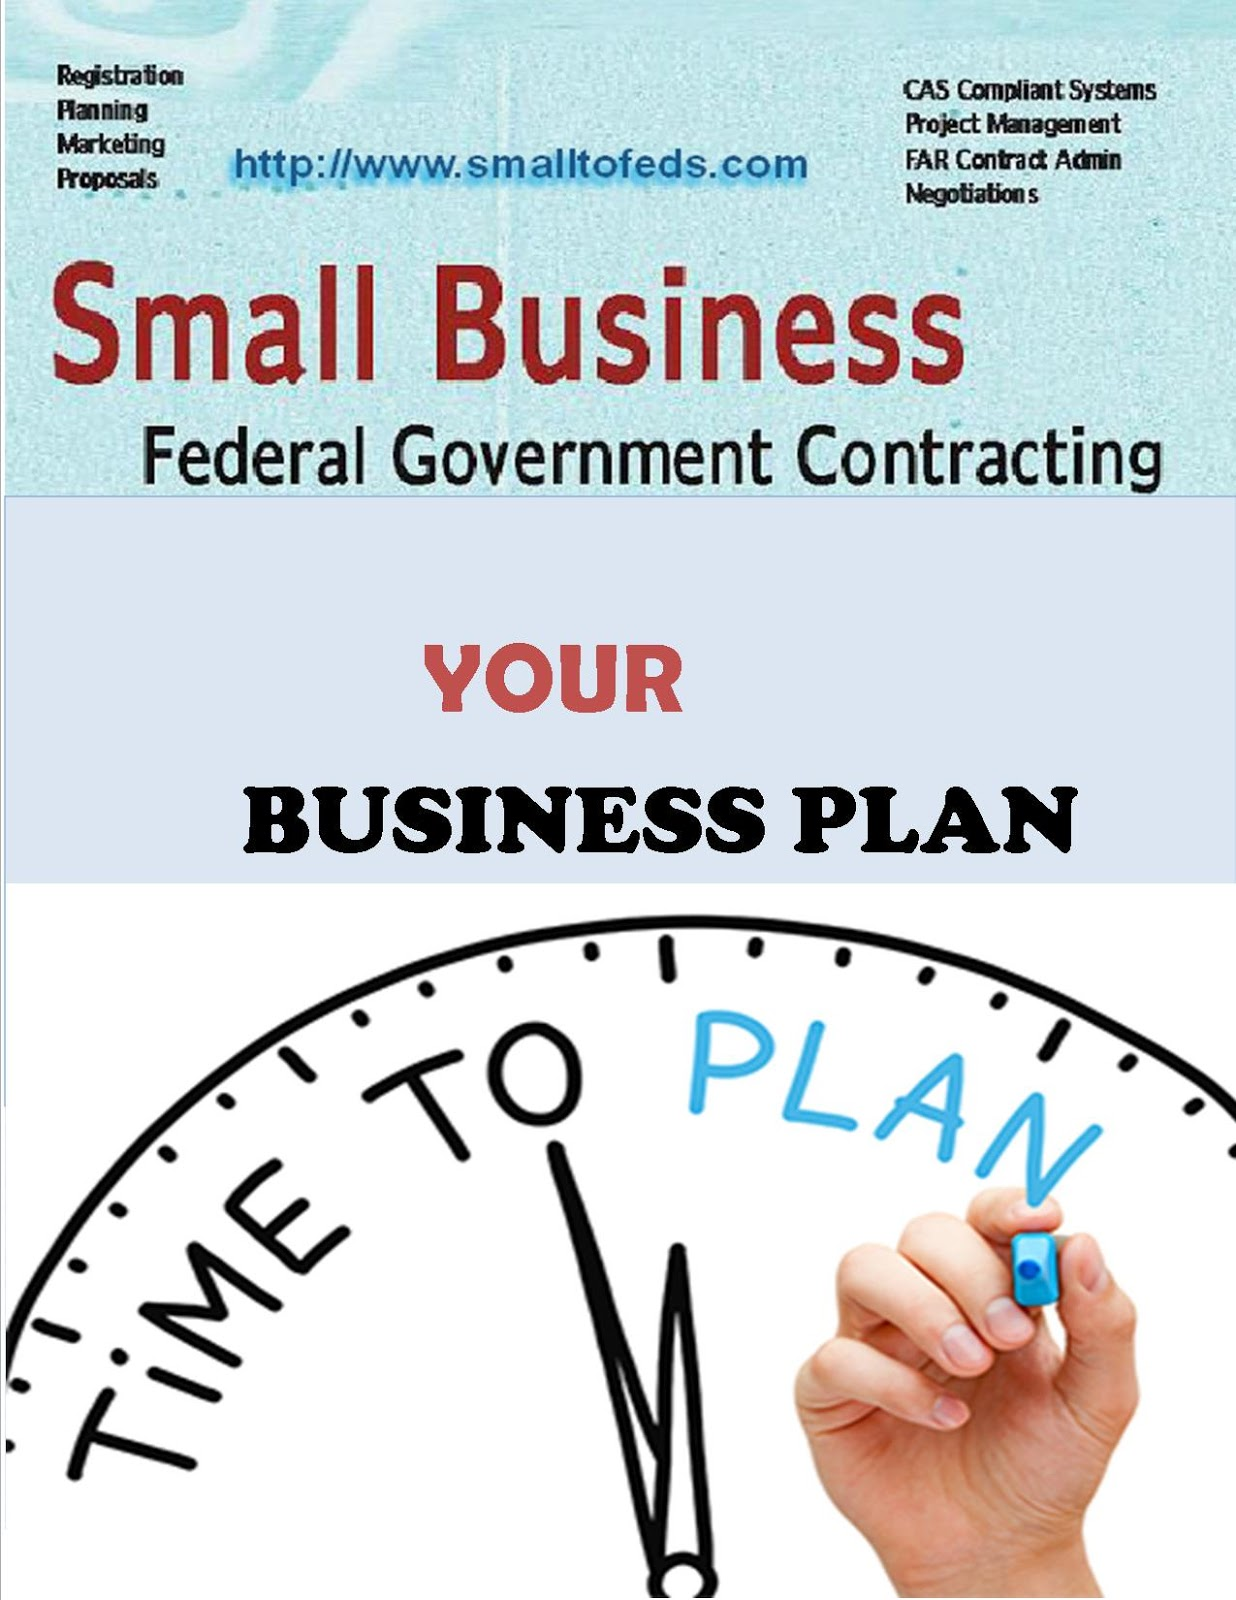 SMALL BUSINESS FEDERAL GOVERNMENT CONTRACTING (